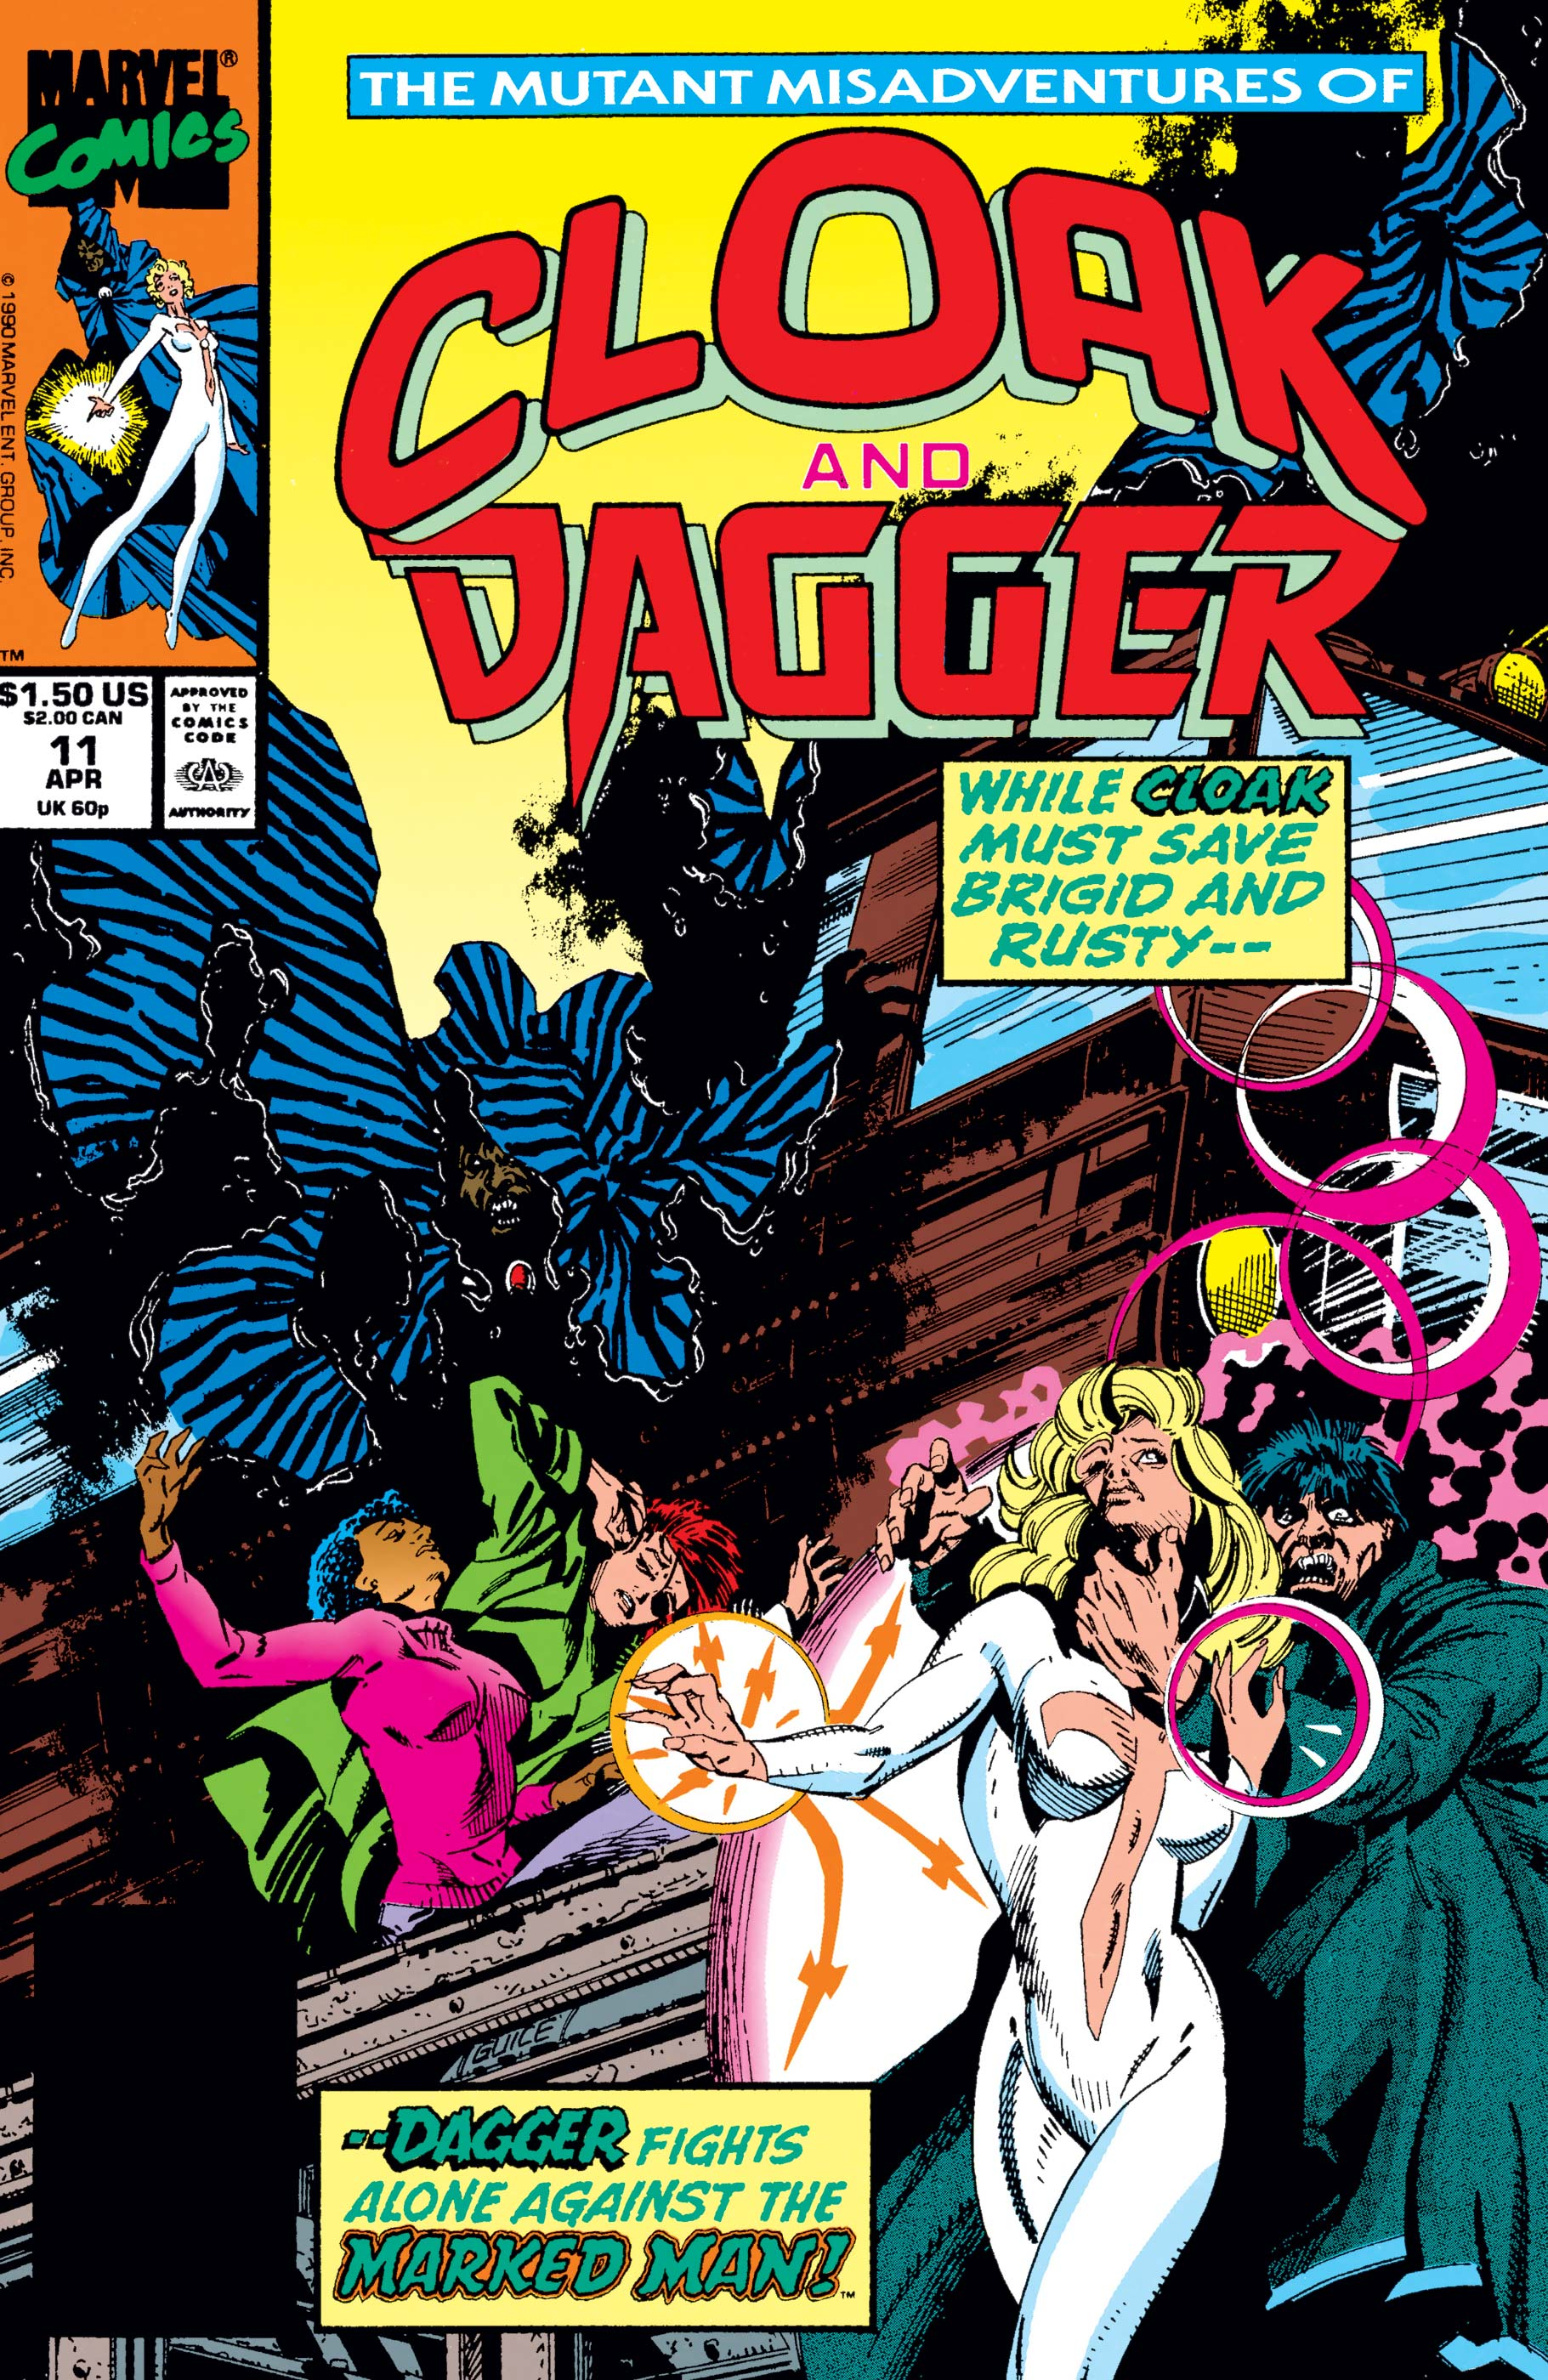 The Mutant Misadventures of Cloak and Dagger (1988) #11